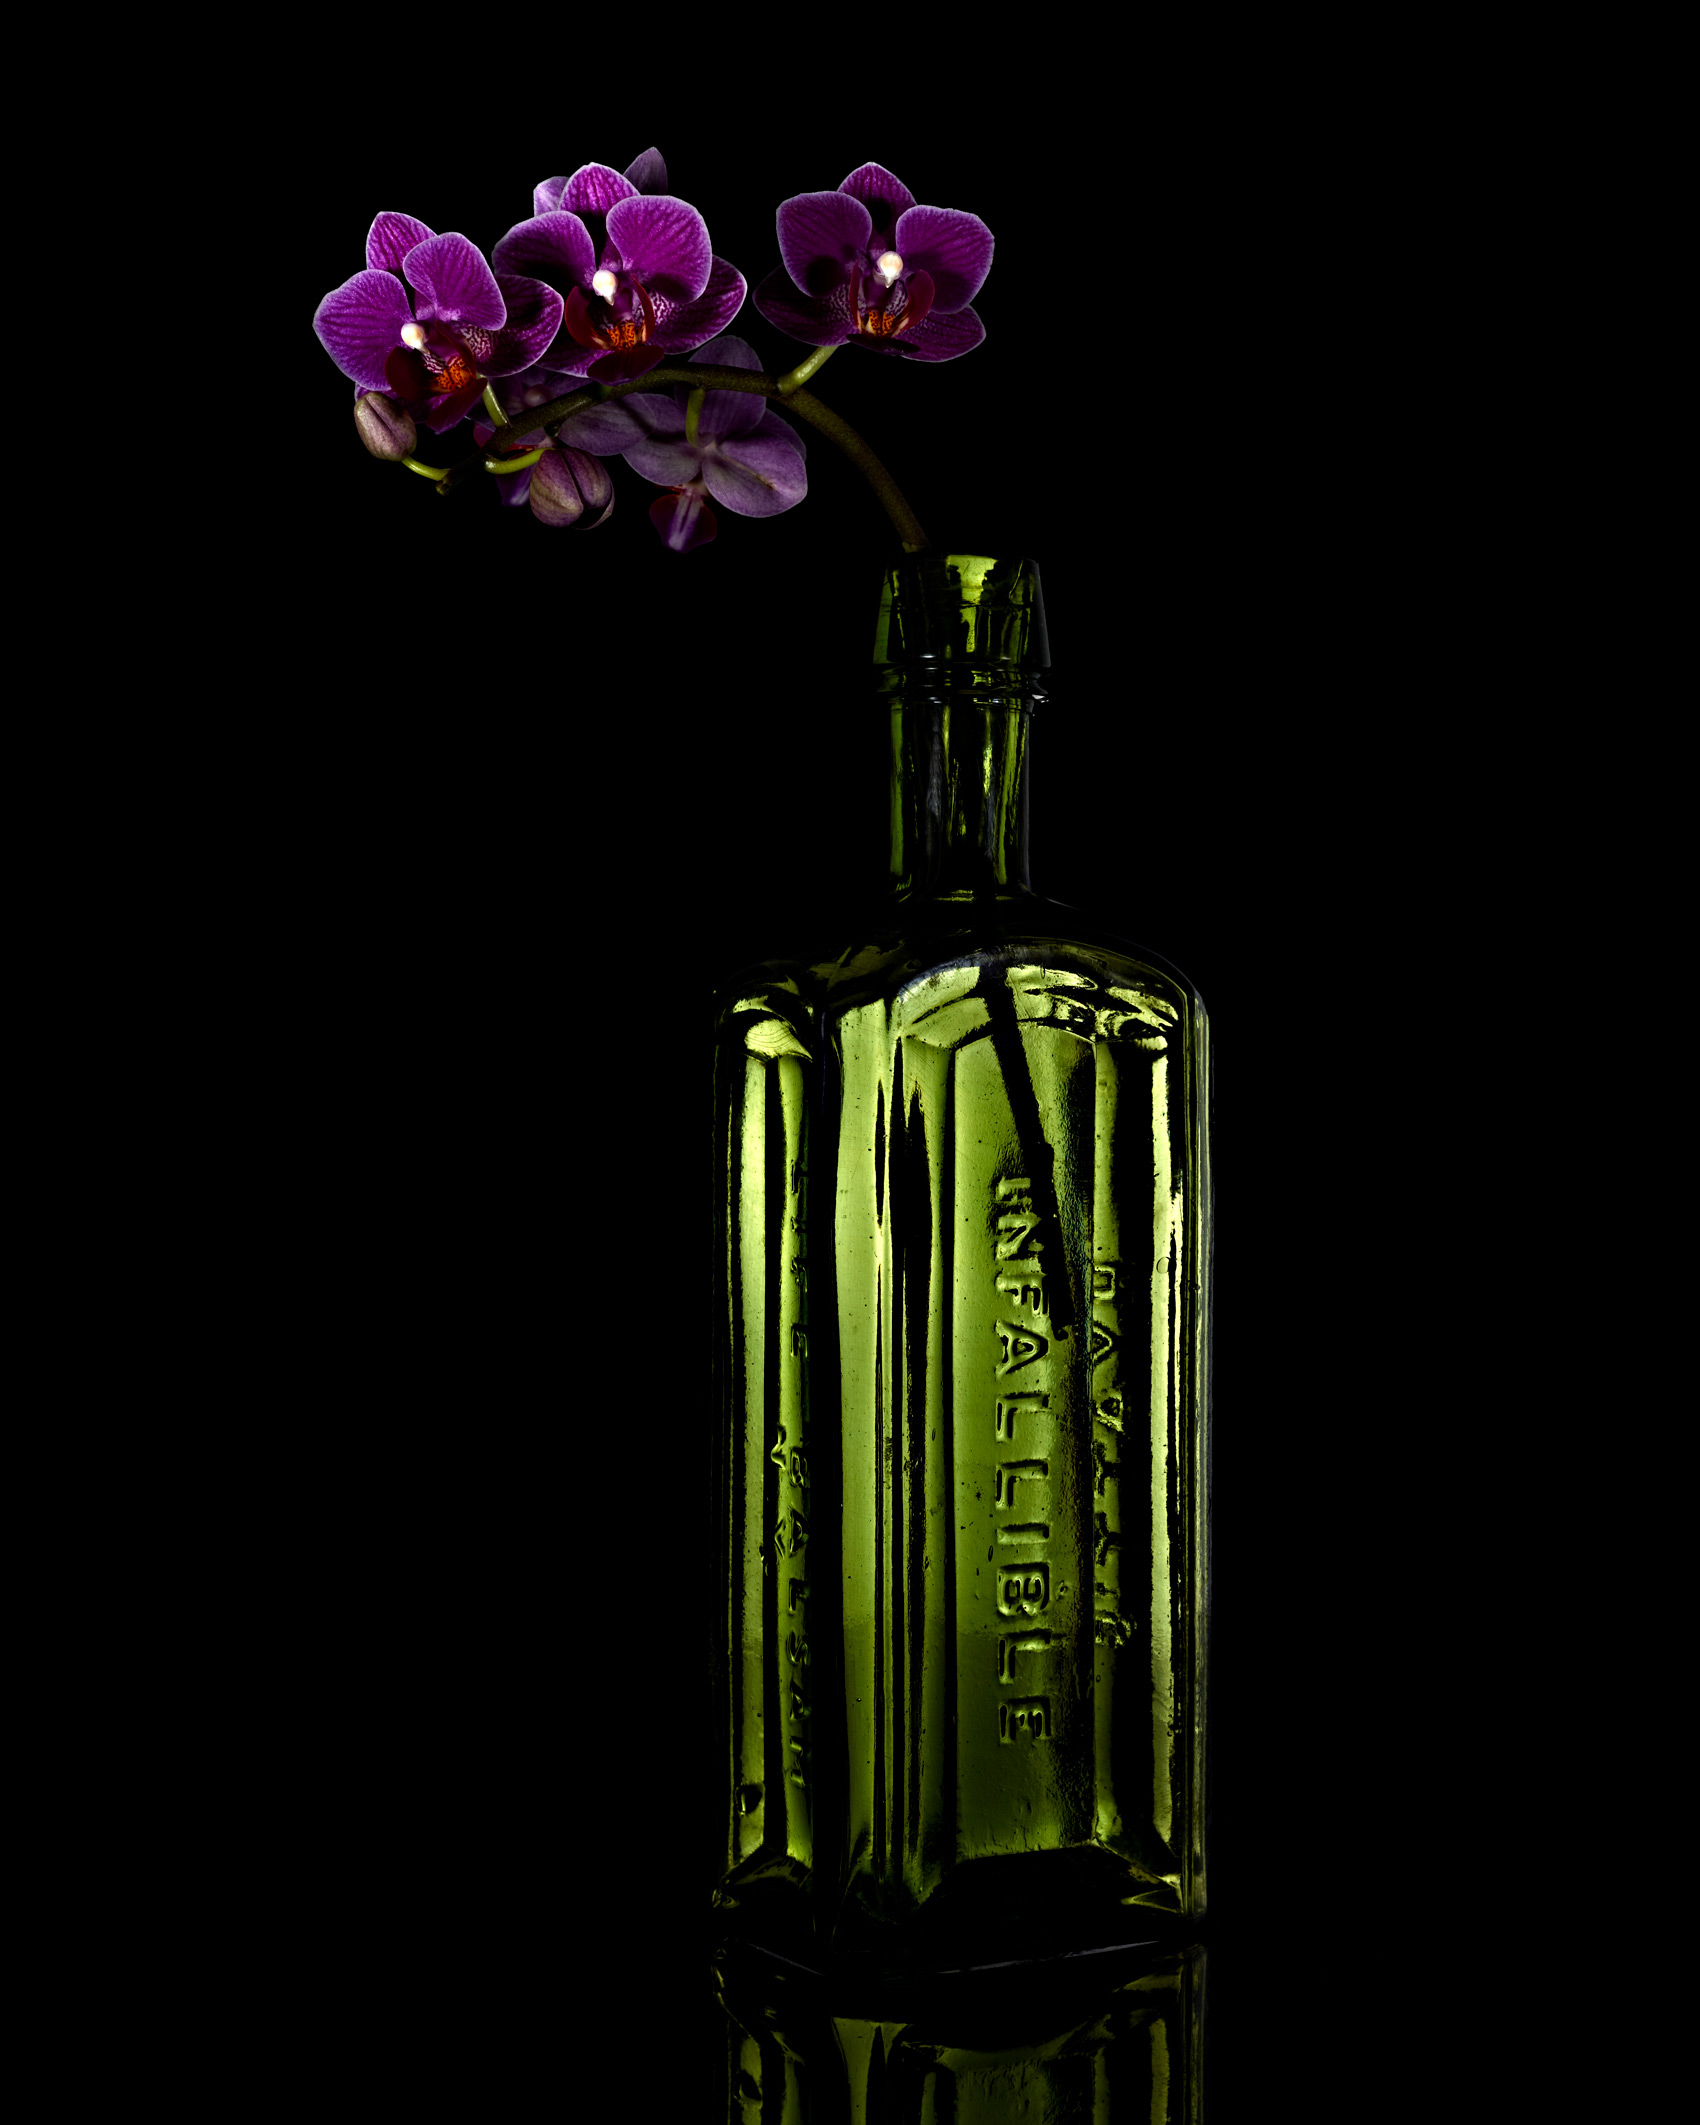 Orchid in a Bottle